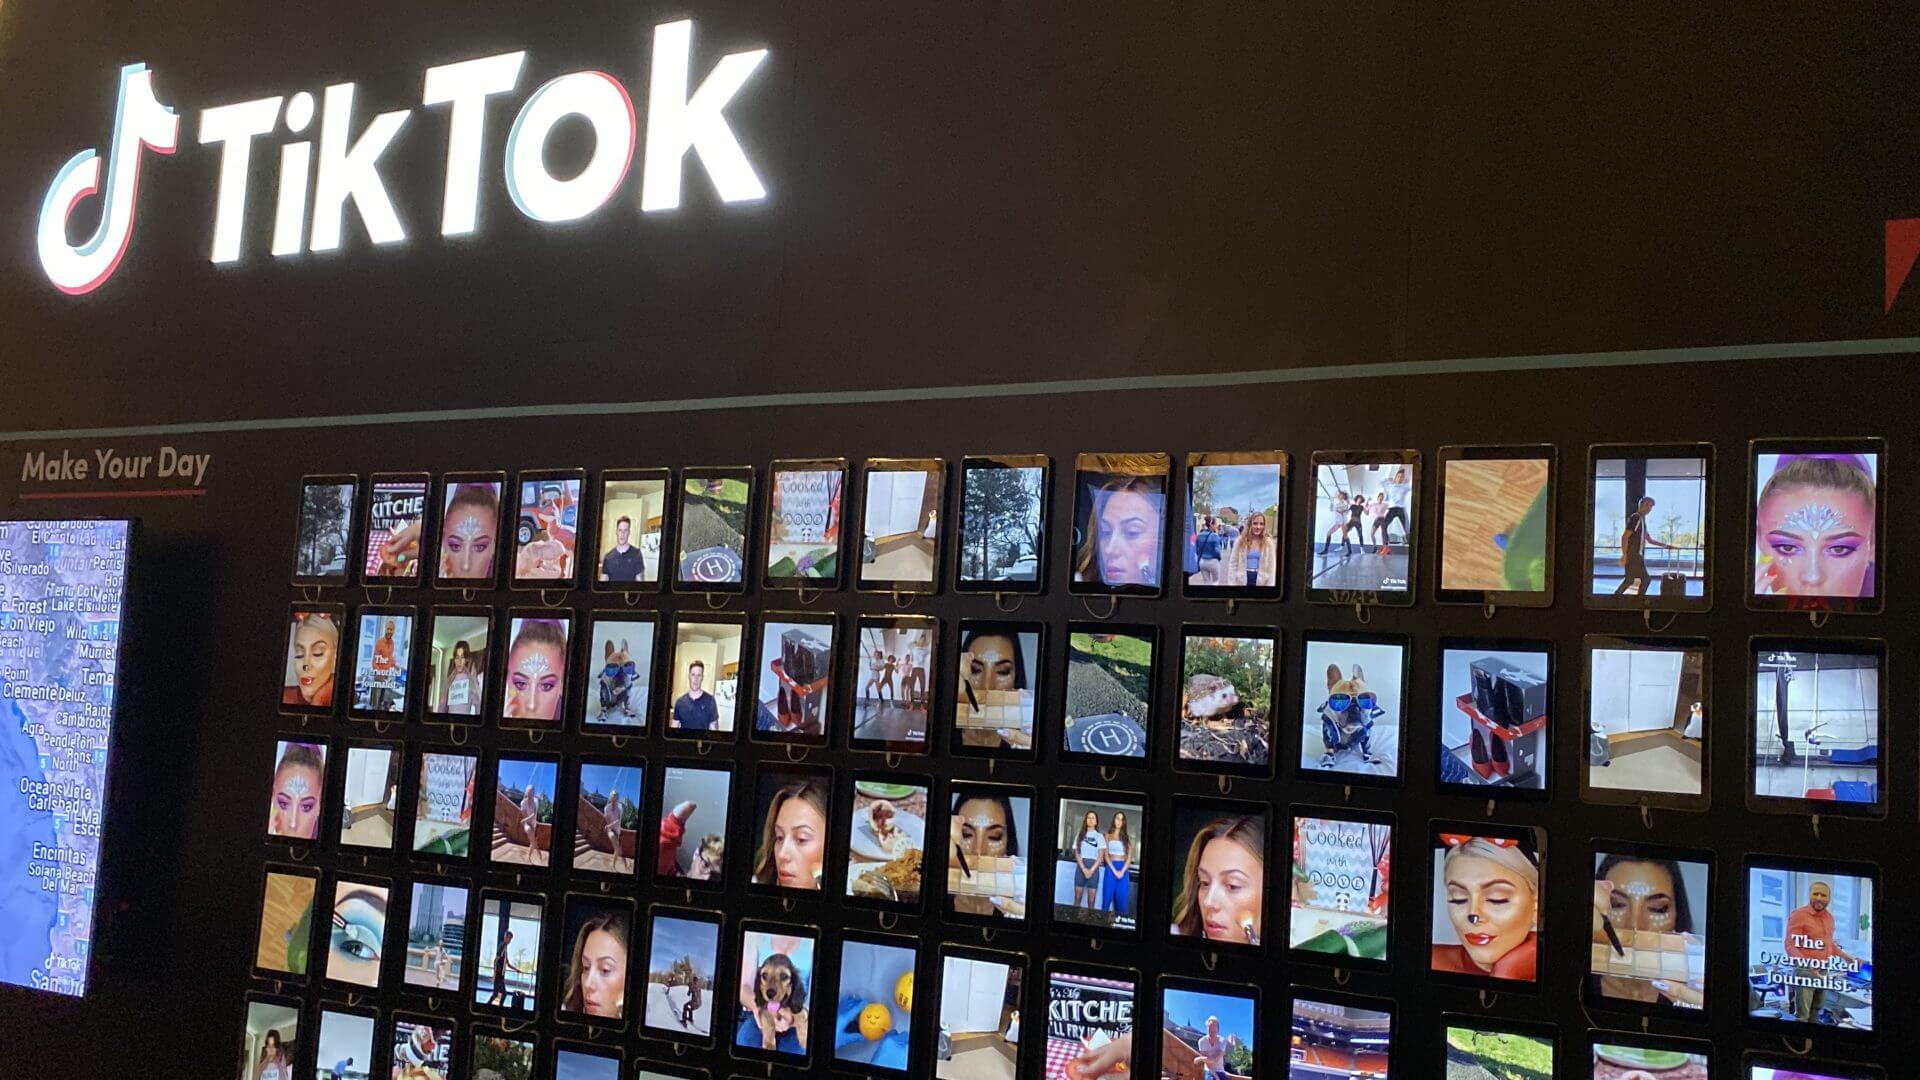 Time spent on content is what matters to TikTok: Friday's Daily Brief